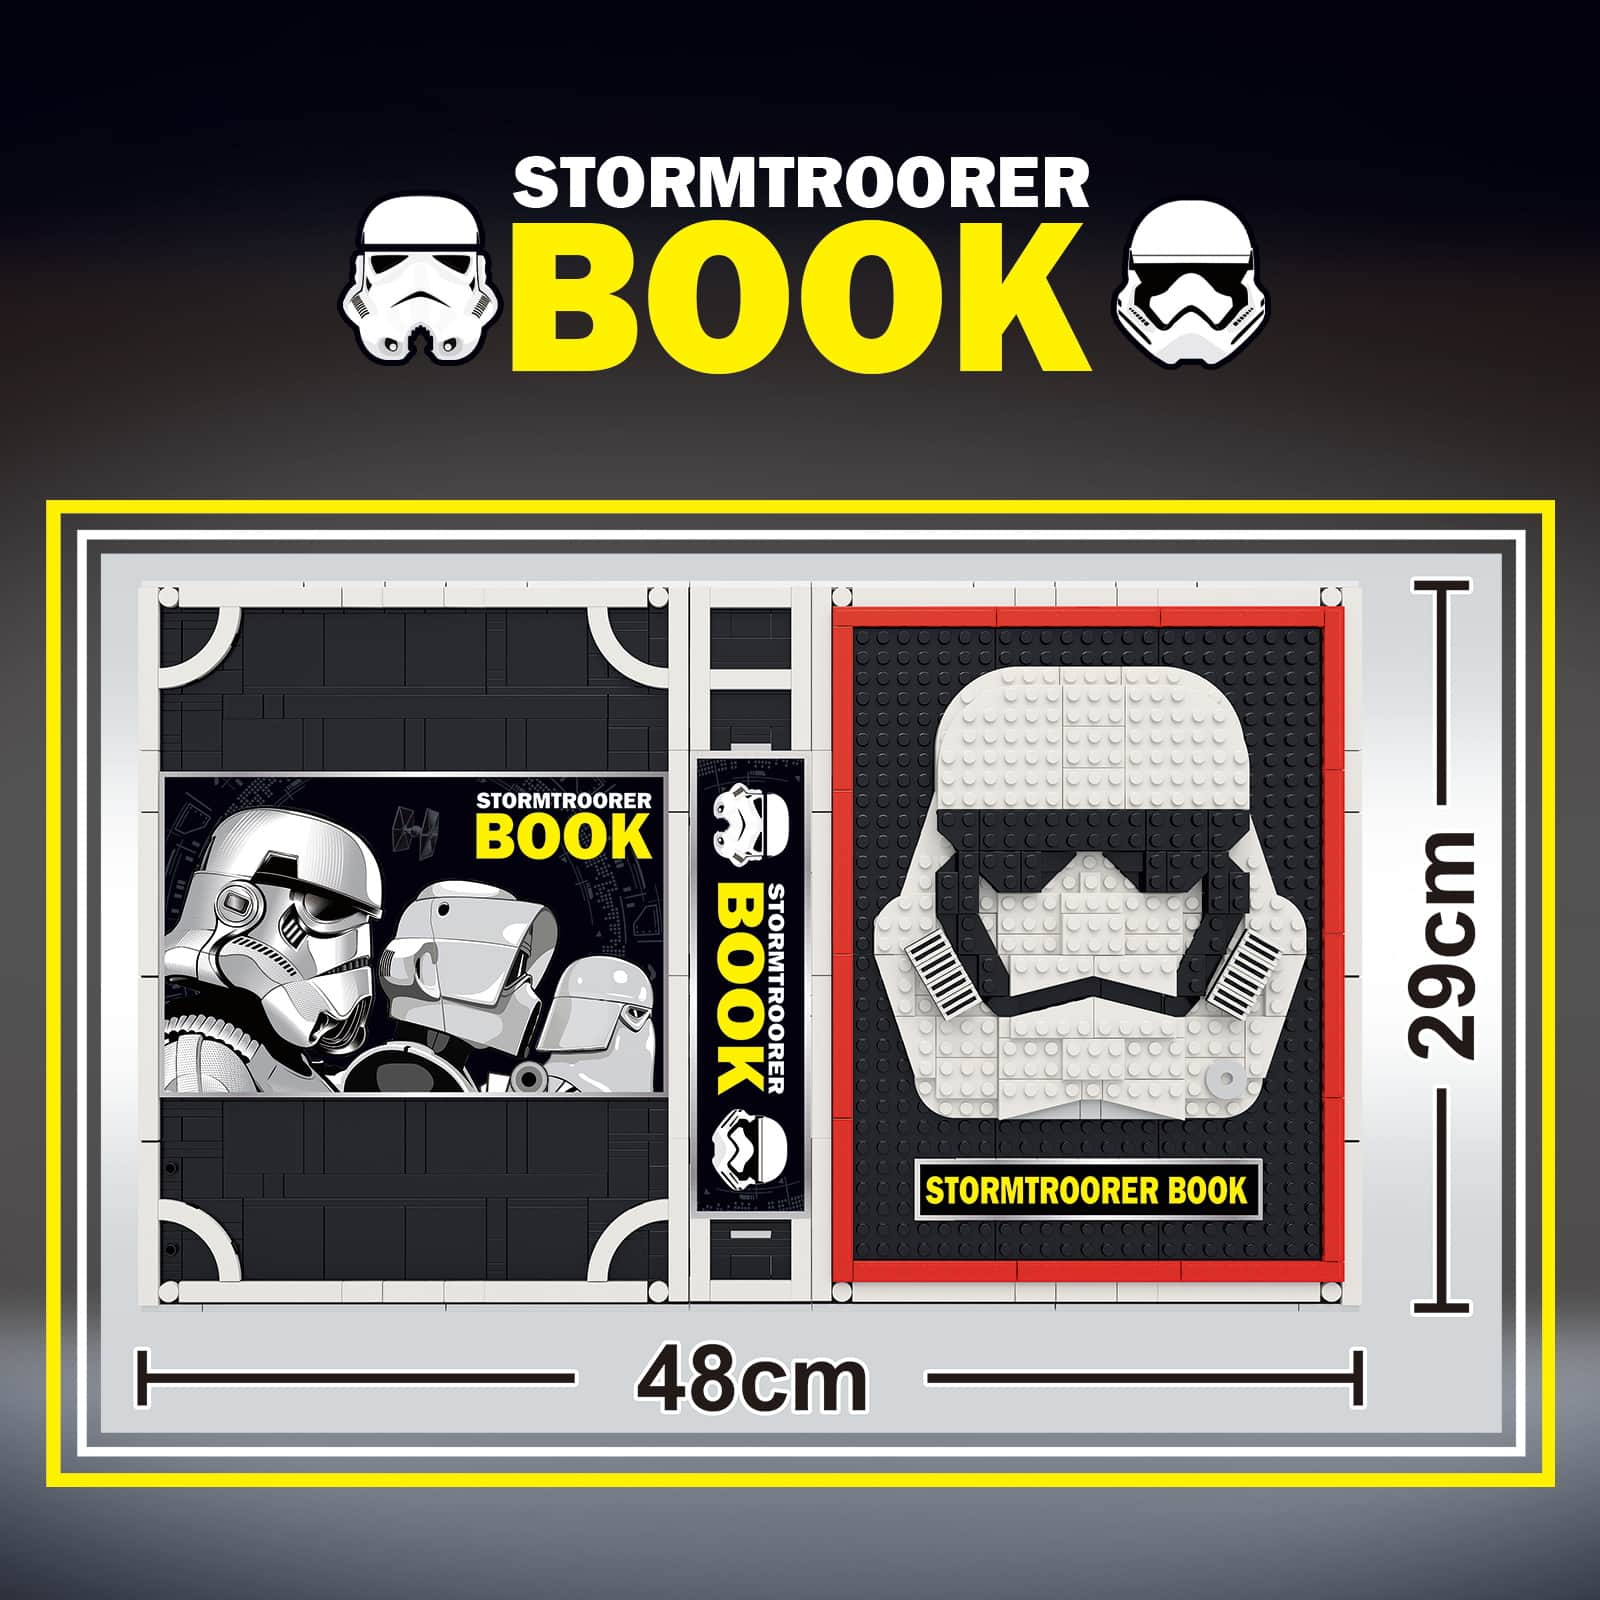 JACK 13003 MOC Star Wars Building Blocks Set, Storm Troopers Collection Book with +52 Minifigs Fit (MOC Compatible Building Blocks Bricks)